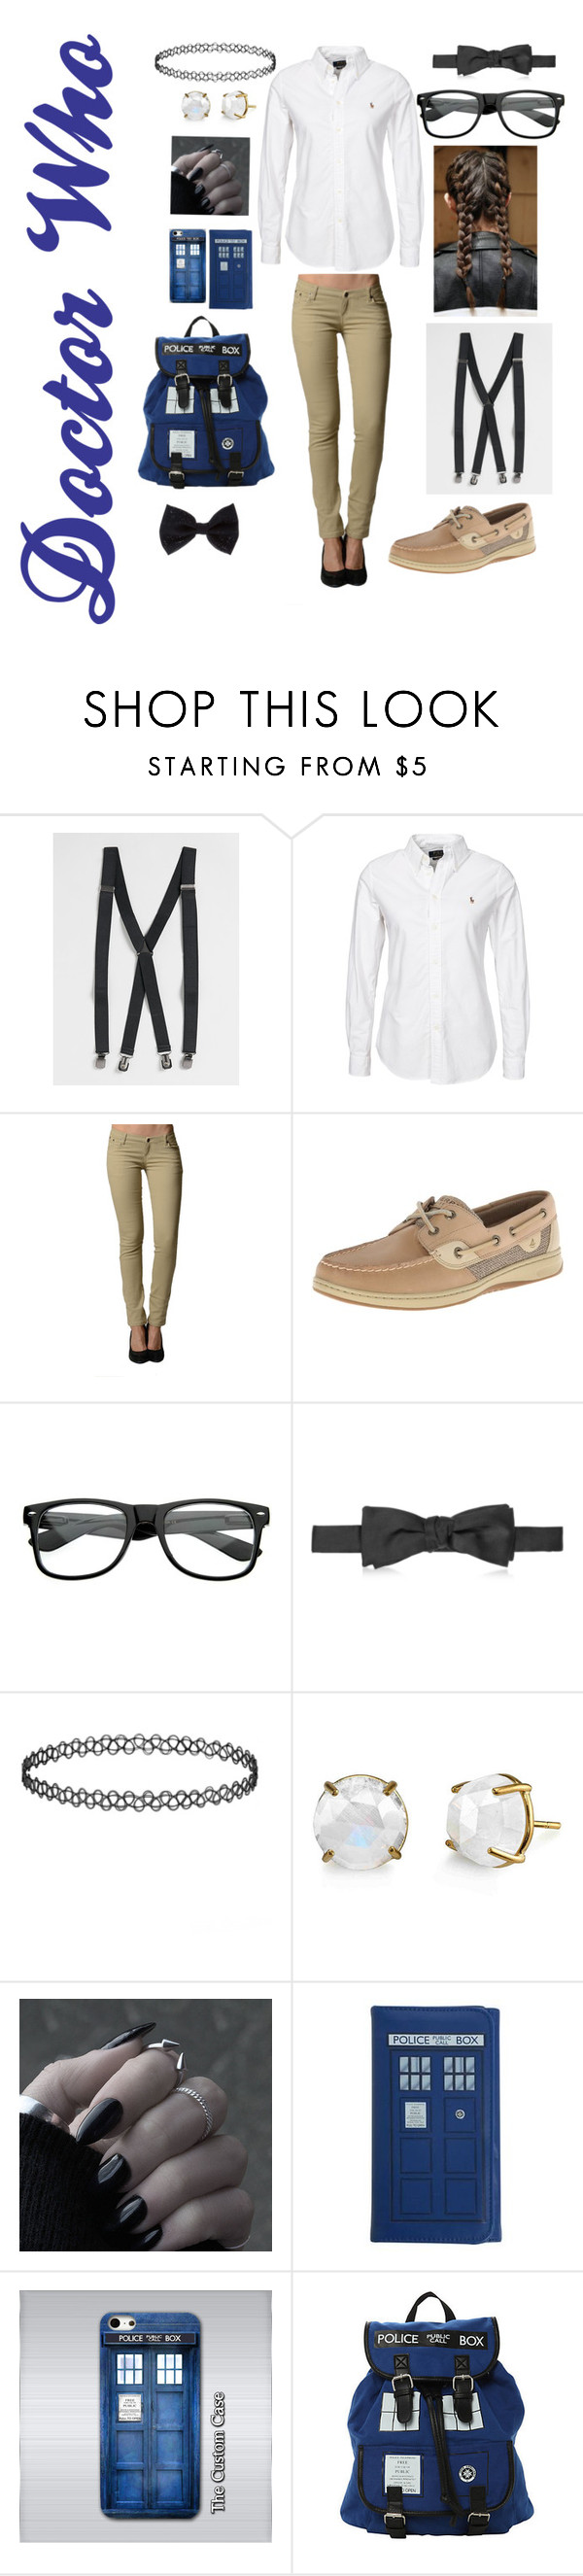 """""""✨Nerd Chic✨"""" by annaleigh1213 ❤ liked on Polyvore featuring Topman, Polo Ralph Lauren, Sperry Top-Sider, Versace, Samsung, Accessorize, women's clothing, women, female and woman"""